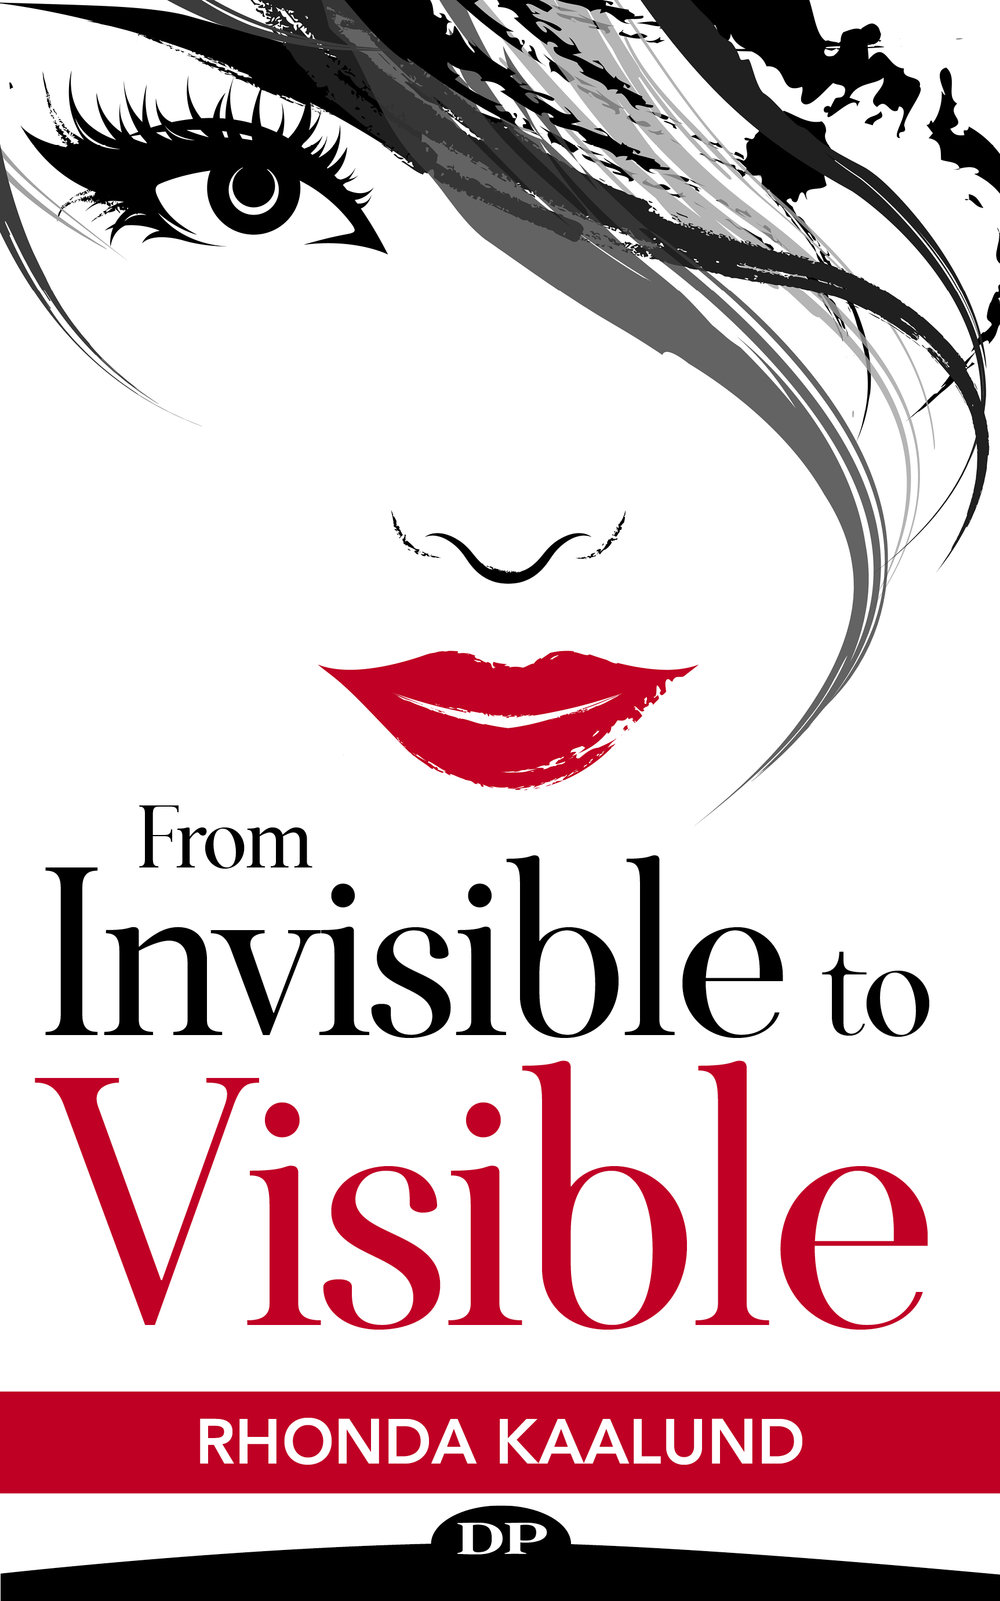 Kaalund_From Invisible to Visible_EBK_FINAL.jpg